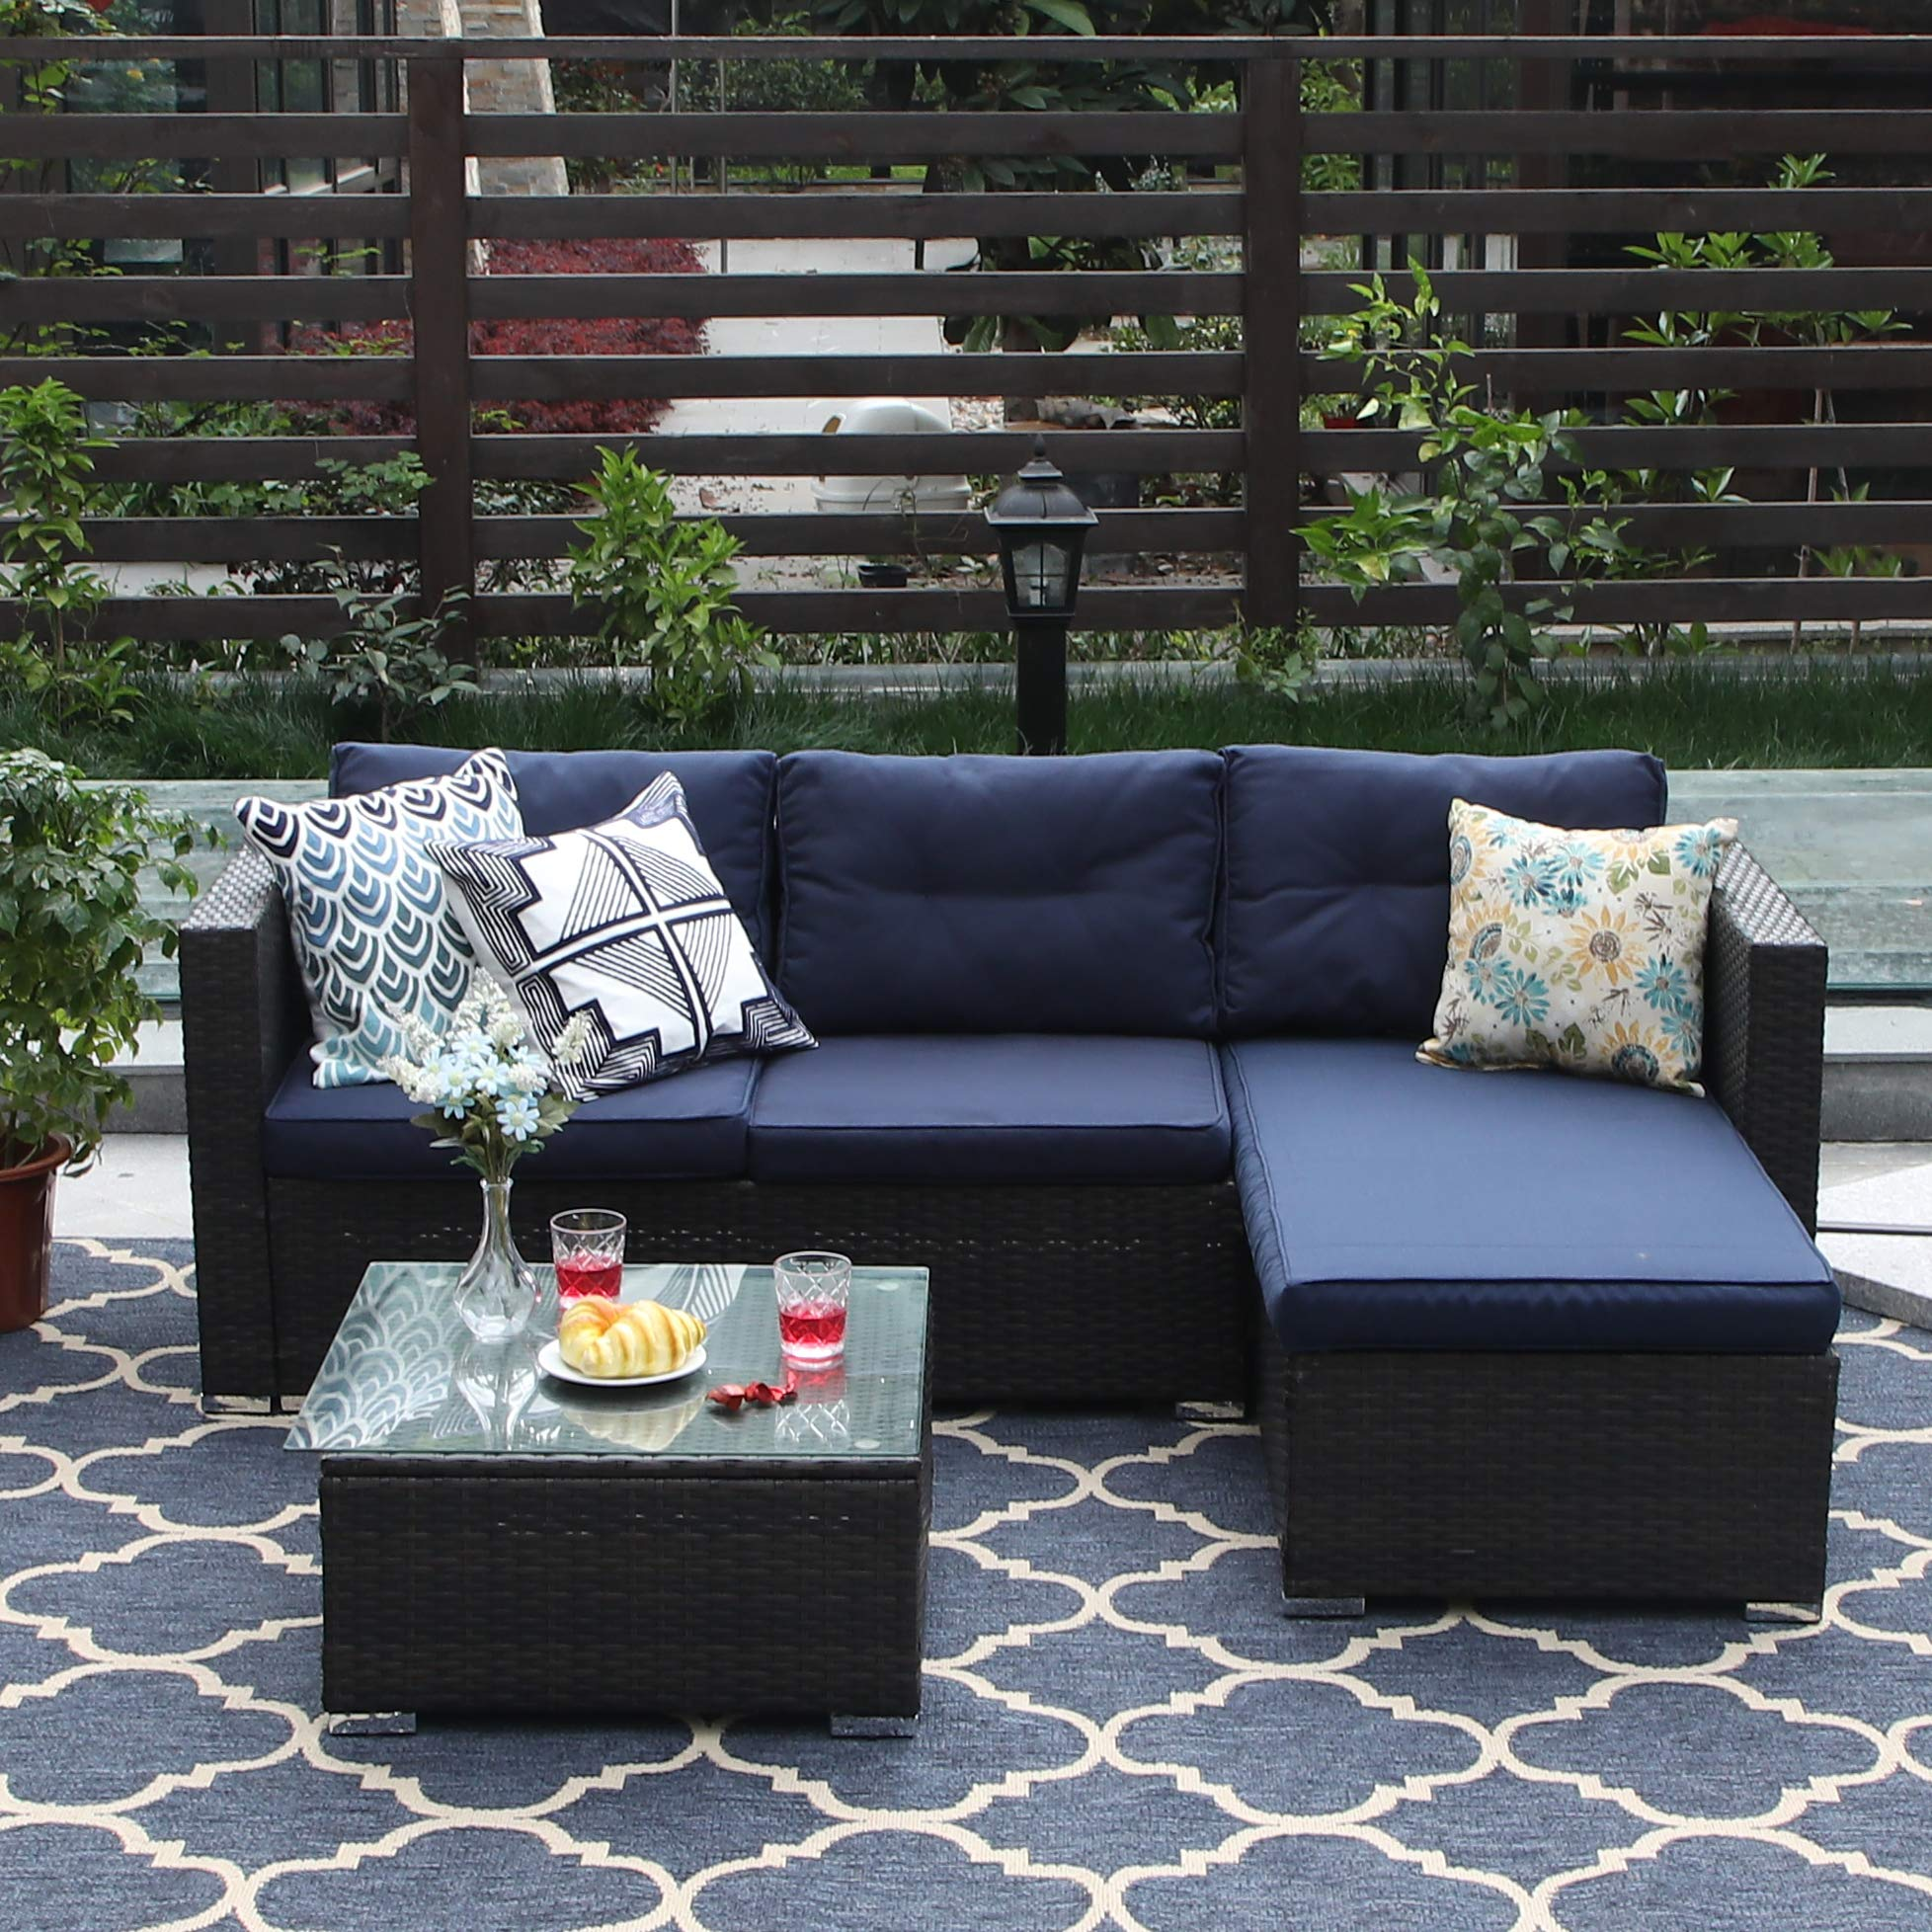 PHI VILLA 3-Piece Patio Furniture Set Rattan Sectional Sofa Wicker Furniture, Blue